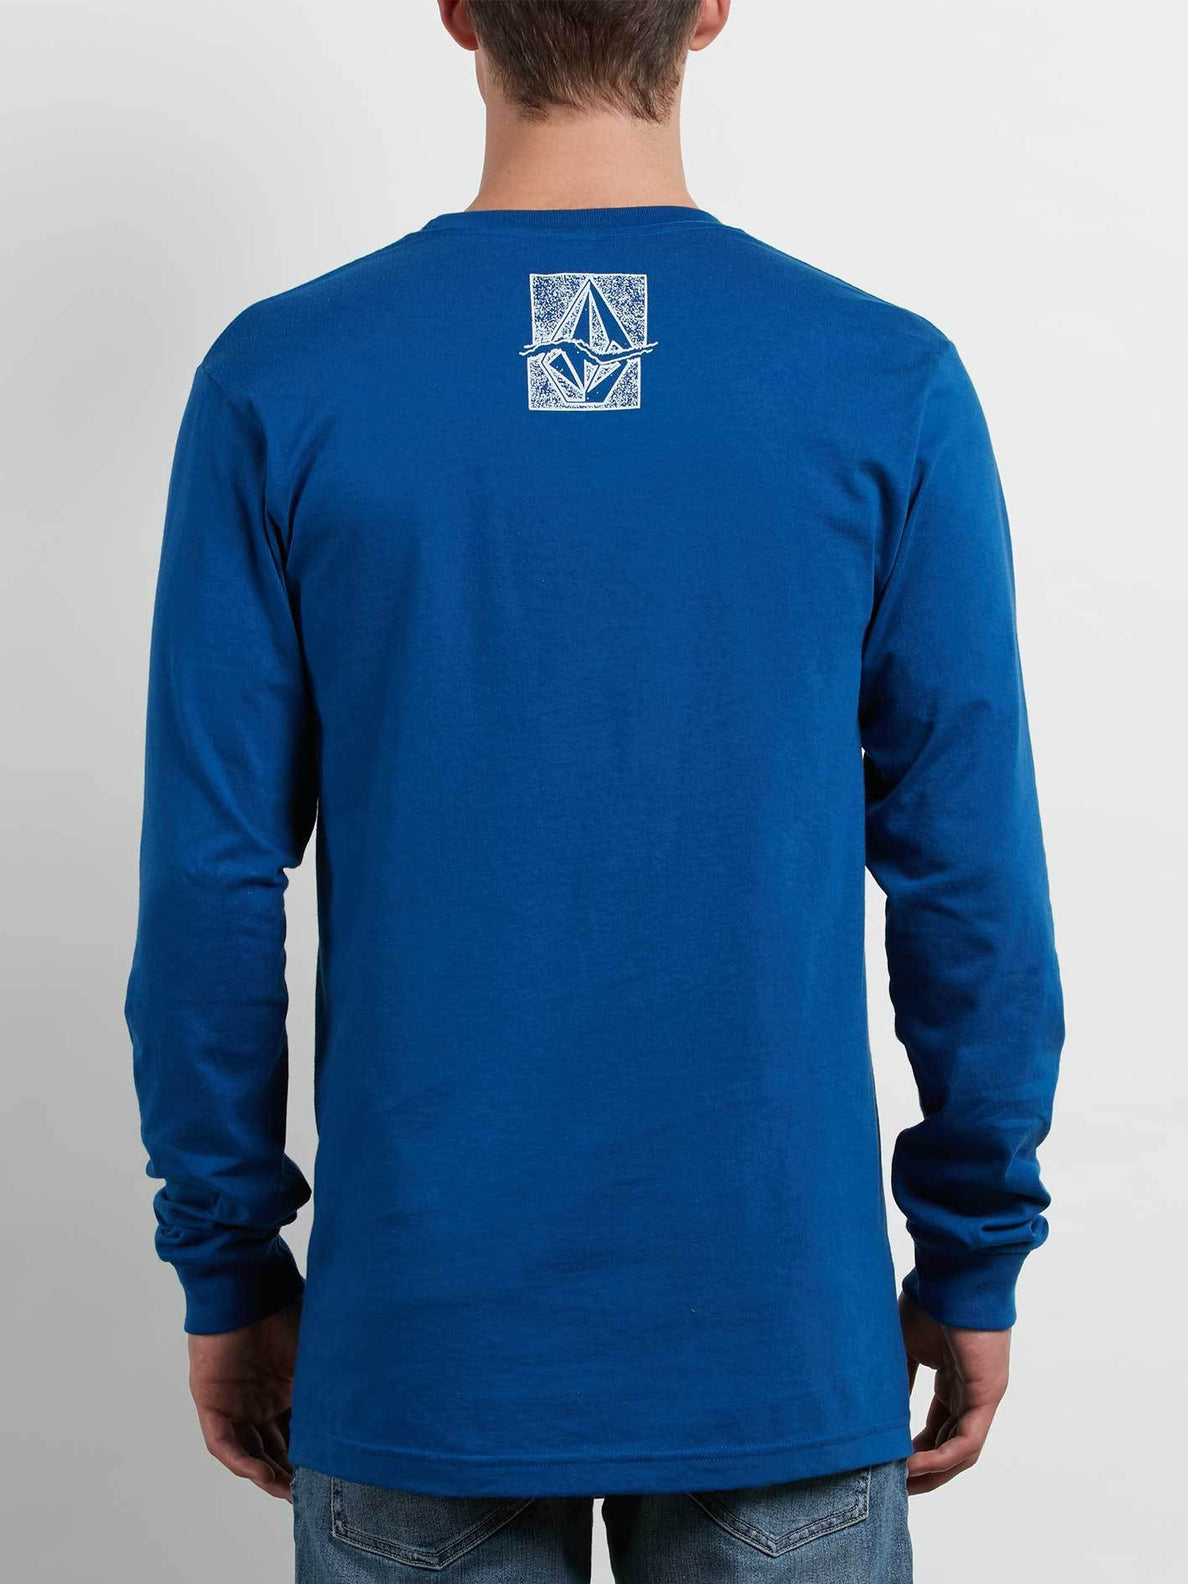 Edge Long Sleeve Tee In Camper Blue, Back View